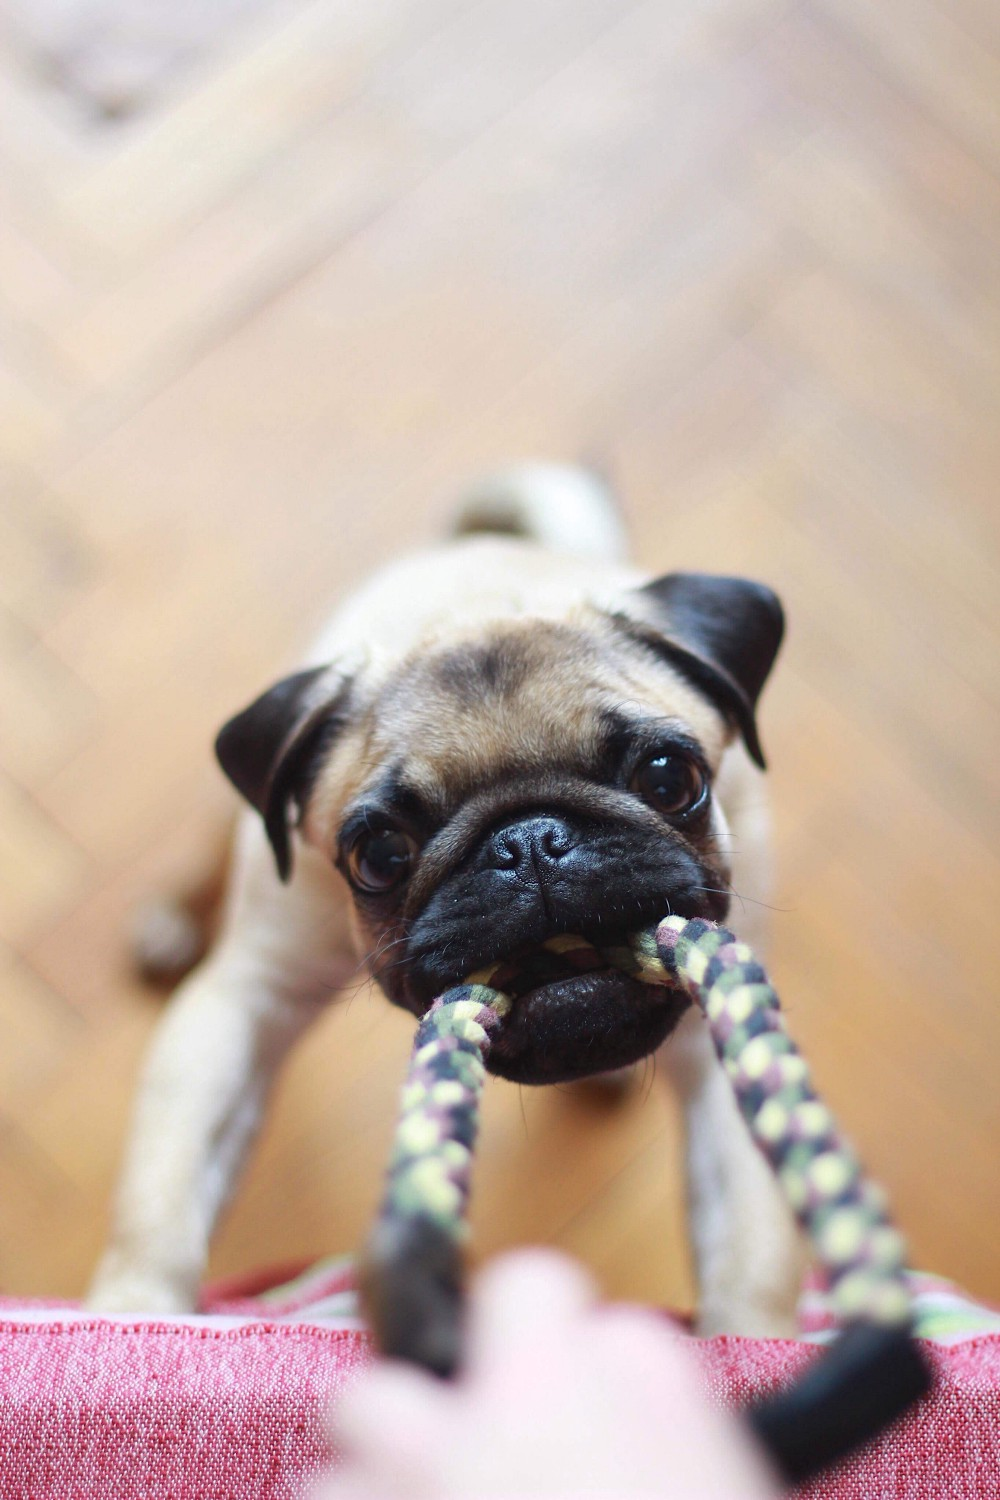 A pug puppy tugging on a colorful bag handle.